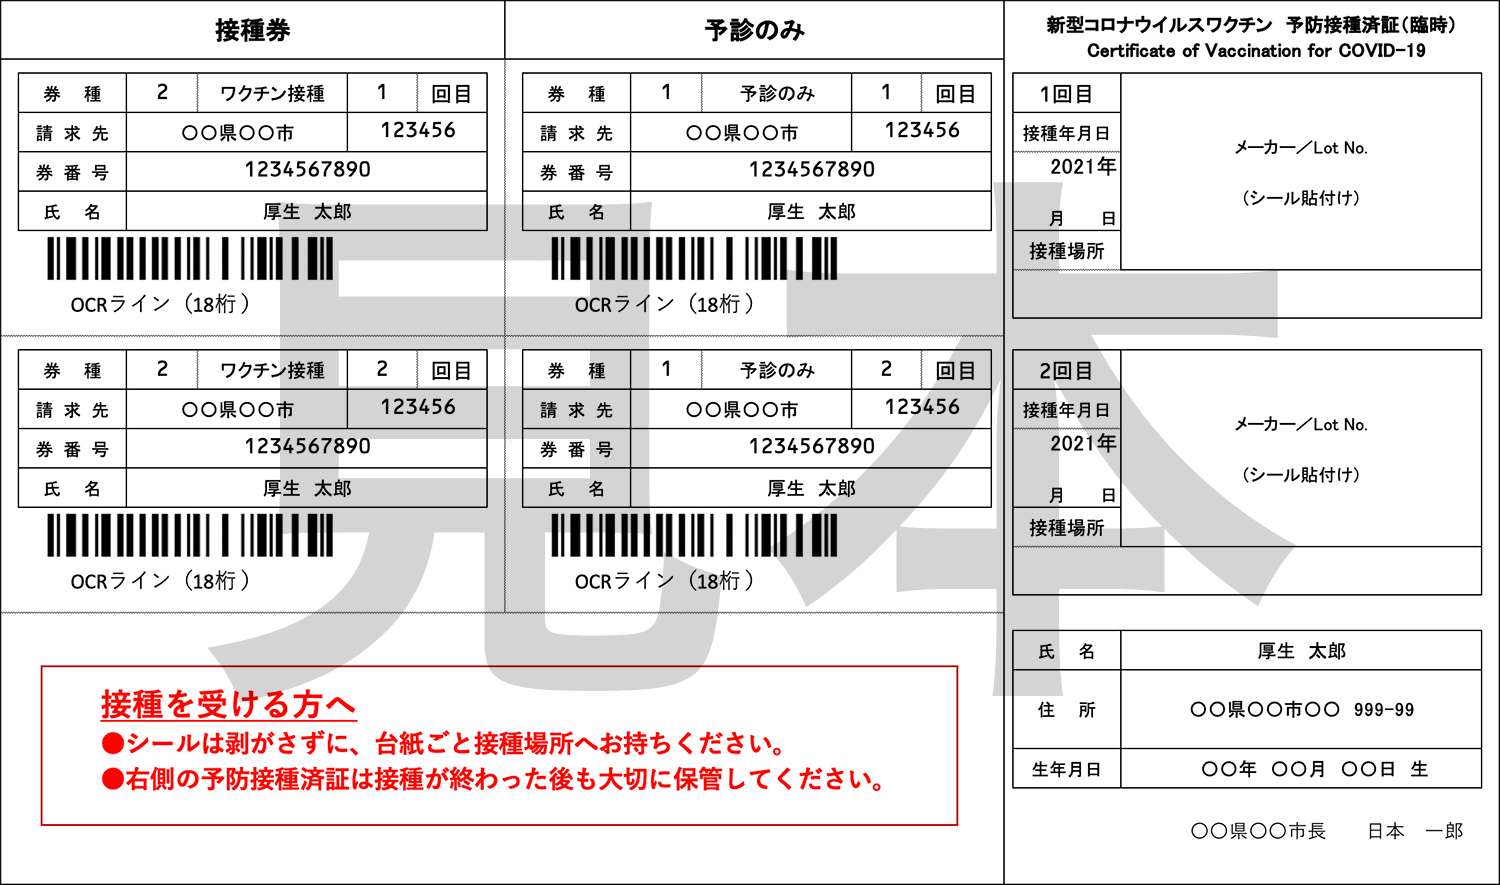 Japan-Vaccination-Voucher-Coupone-Sample.png